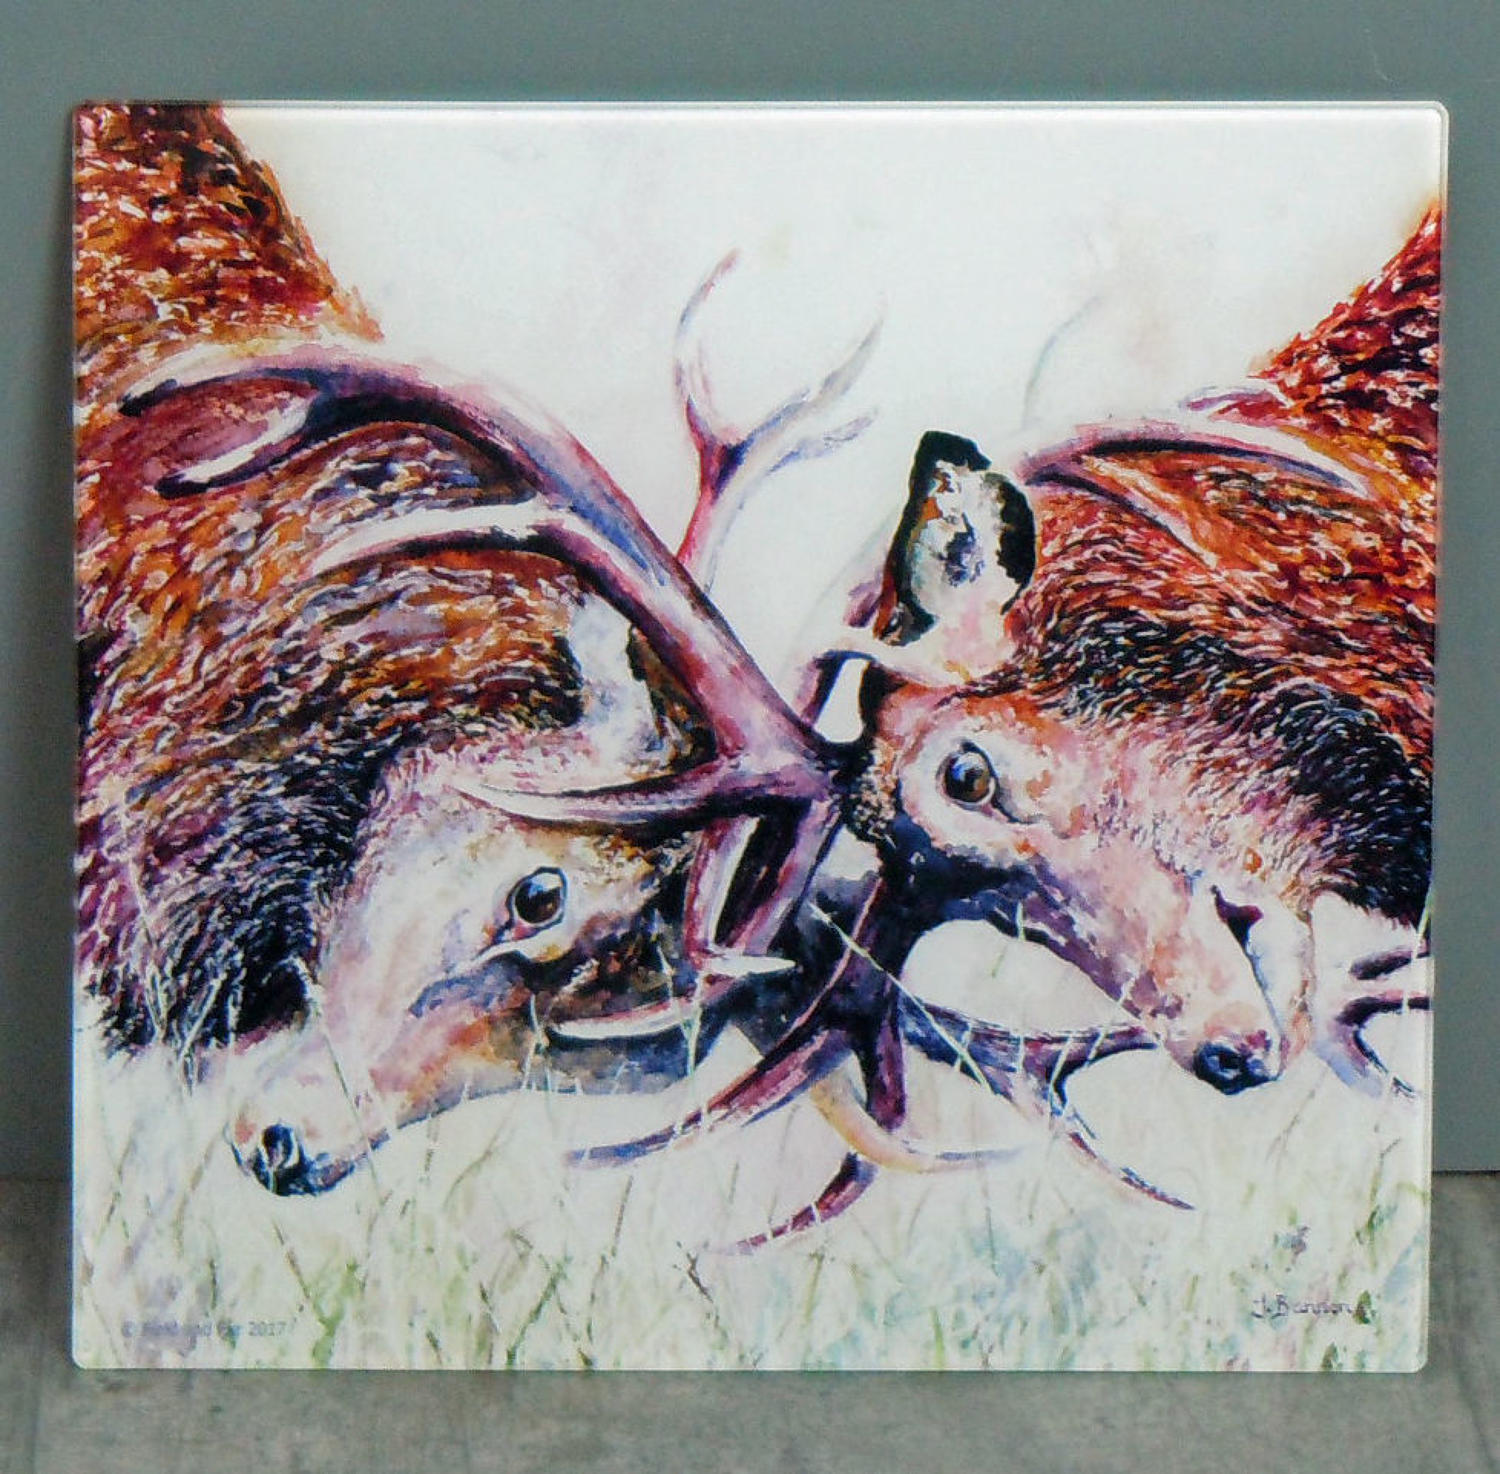 Glass Stag chopping board, worktop saver